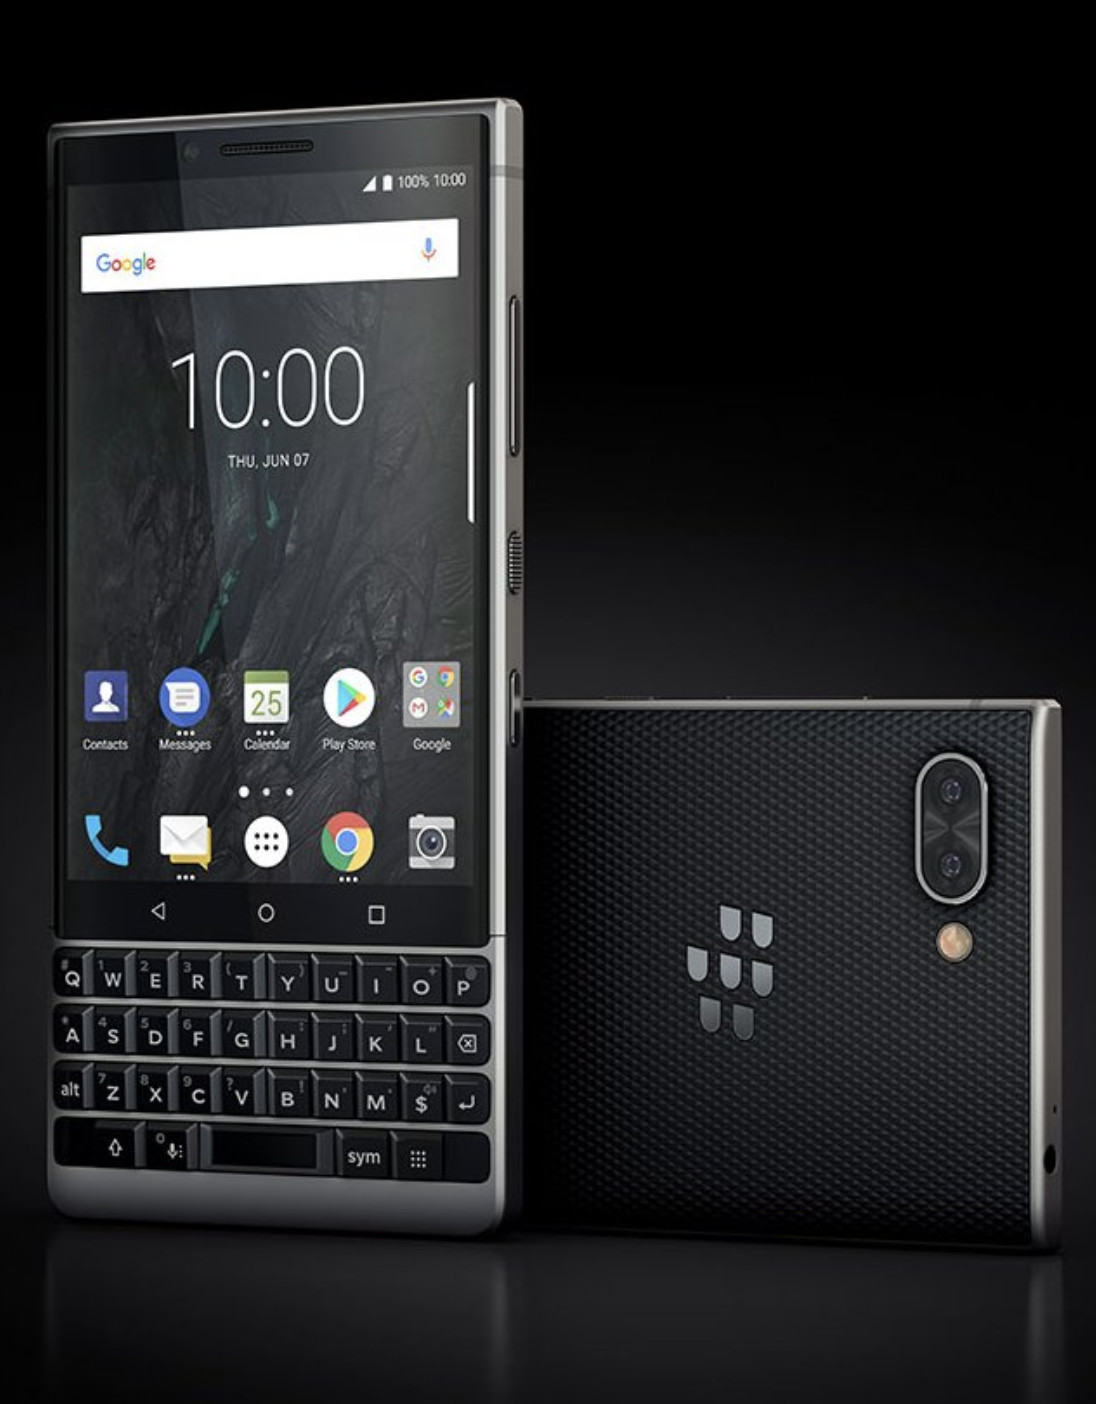 Ahead of June 7 launch, images of BlackBerry KEY2 leaked